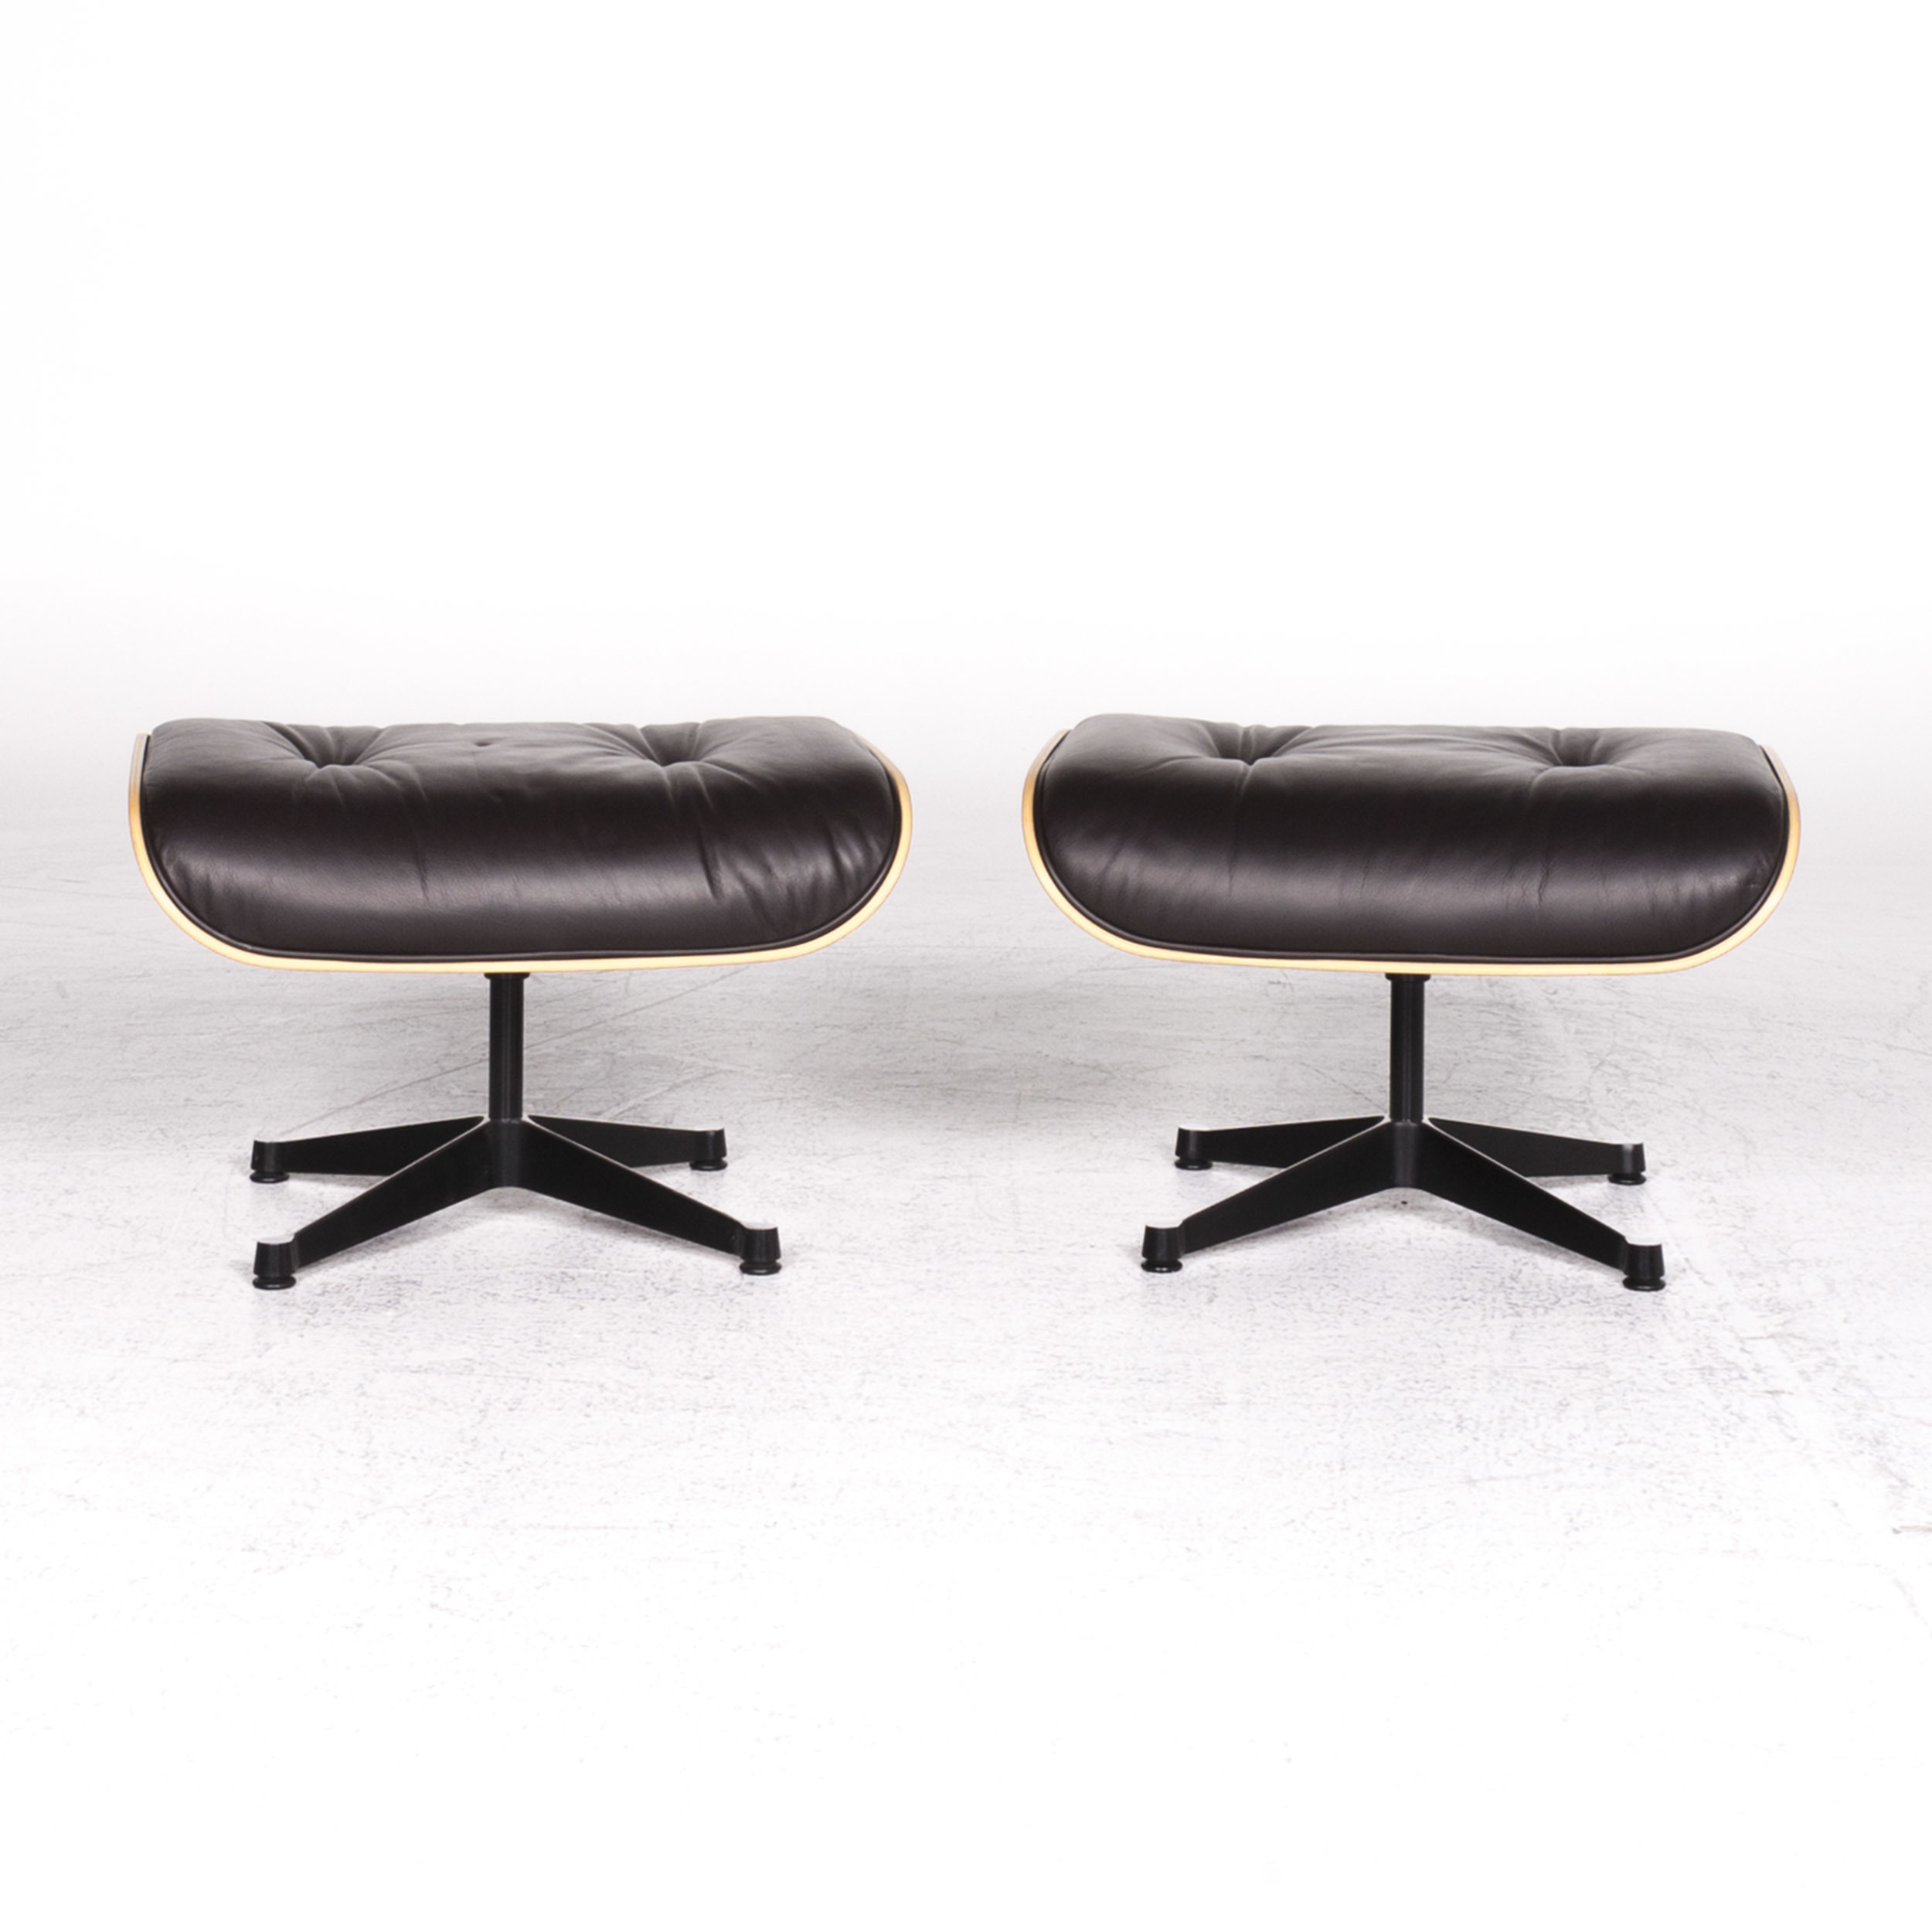 Vitra Eames Lounge Chair Black Vitra Eames Lounge Chair Designer Leather Stool Set Brown Charles Ray Eames Chair 9012